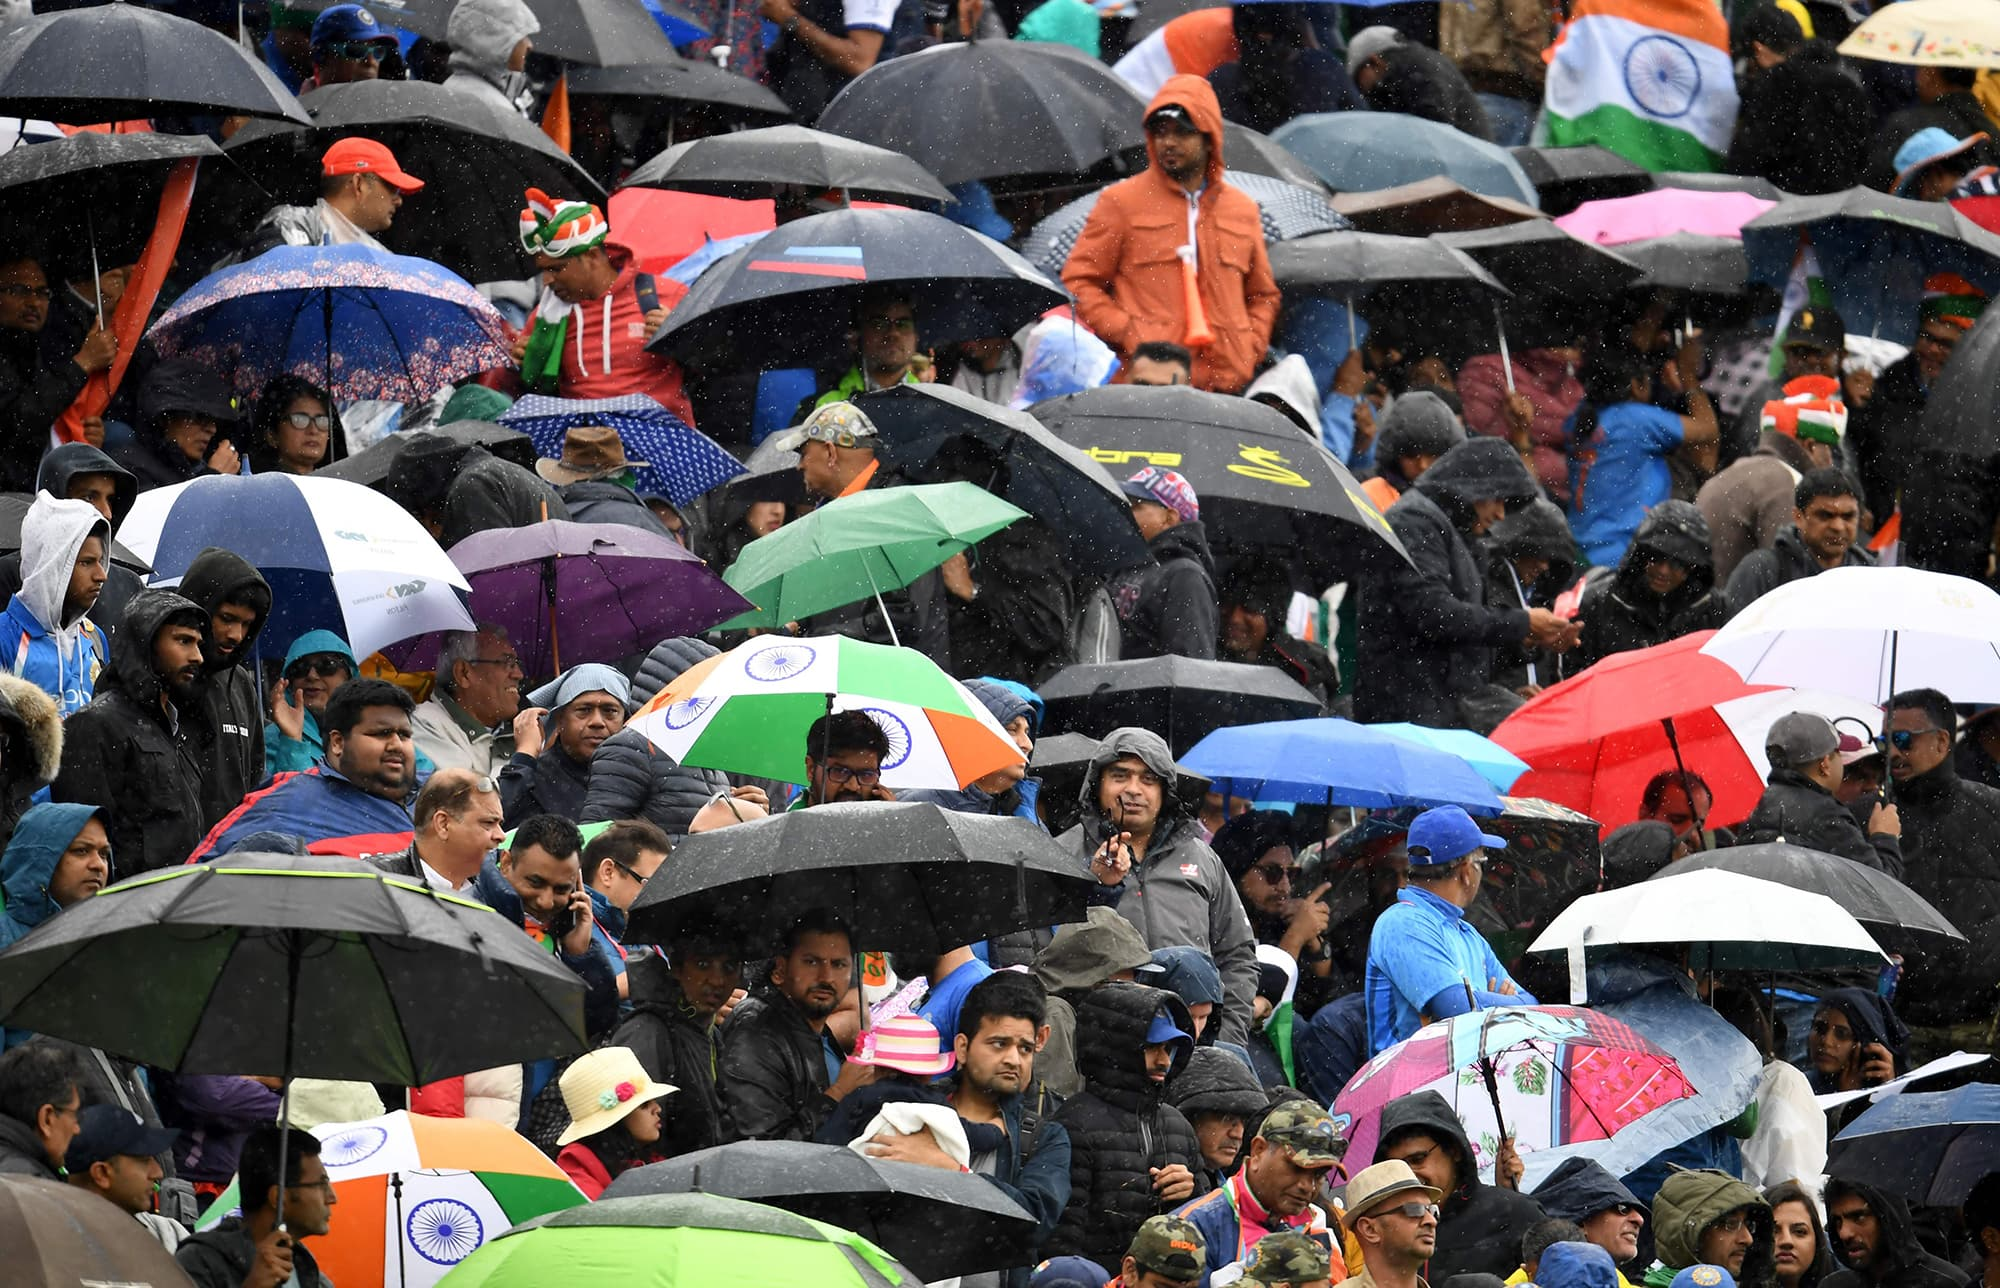 Spectators take cover under umbrellas as rain stops play. ─ AFP